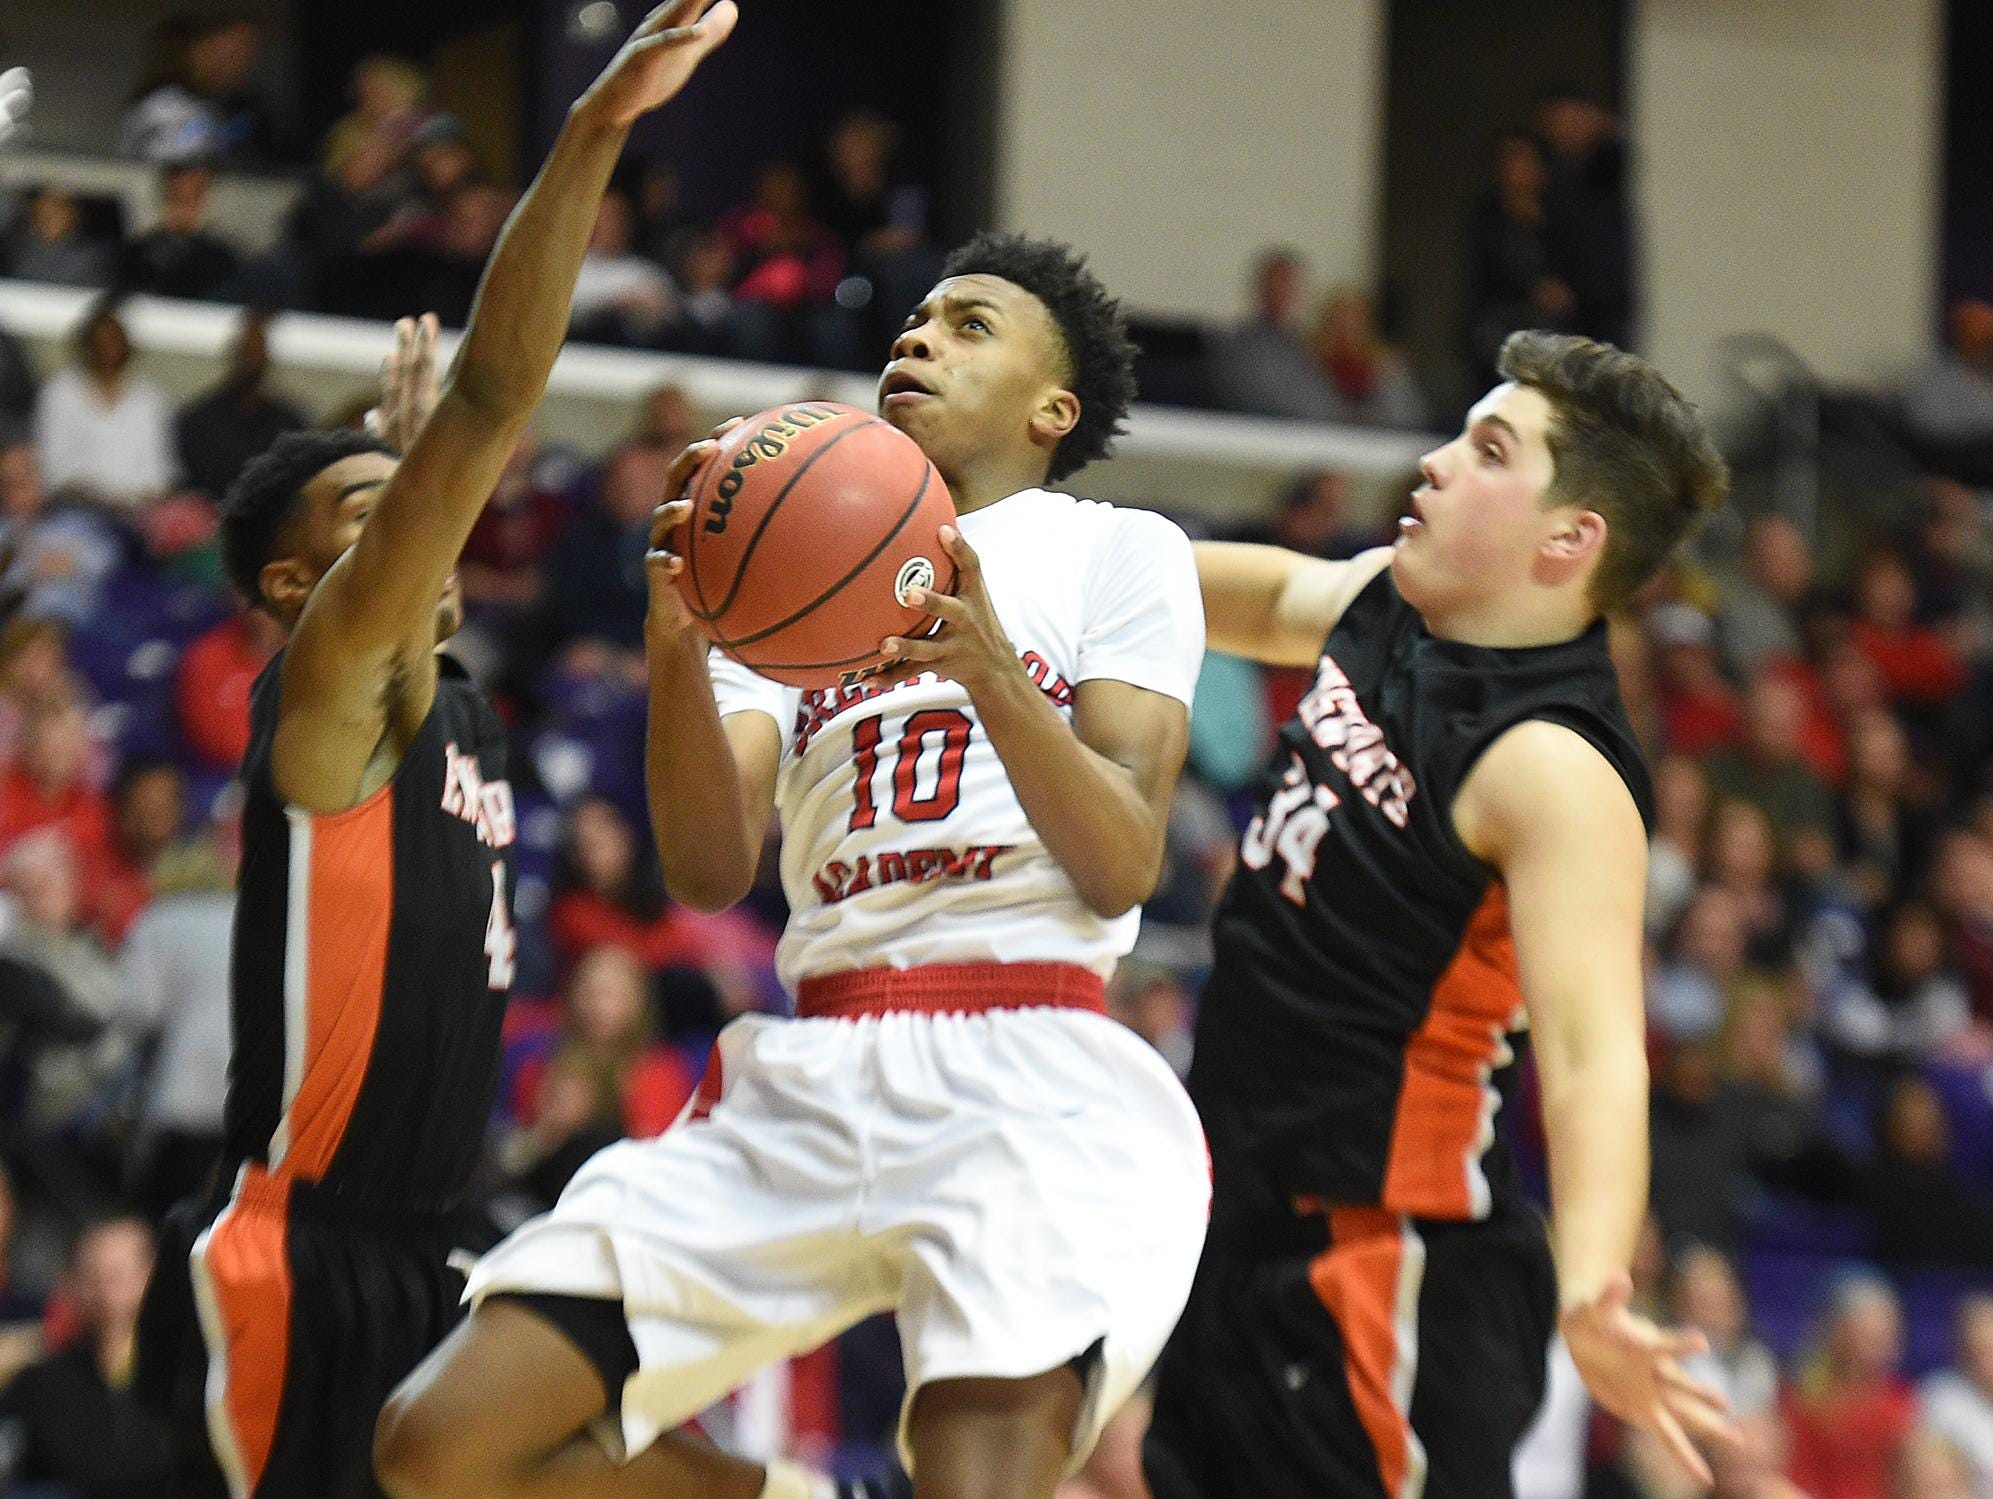 Brentwood Academy's Darius Garland (10) shoots betweeen Enworth's Caleb Upkins (4) and Tanner Antonetti in action last year in Nashville.